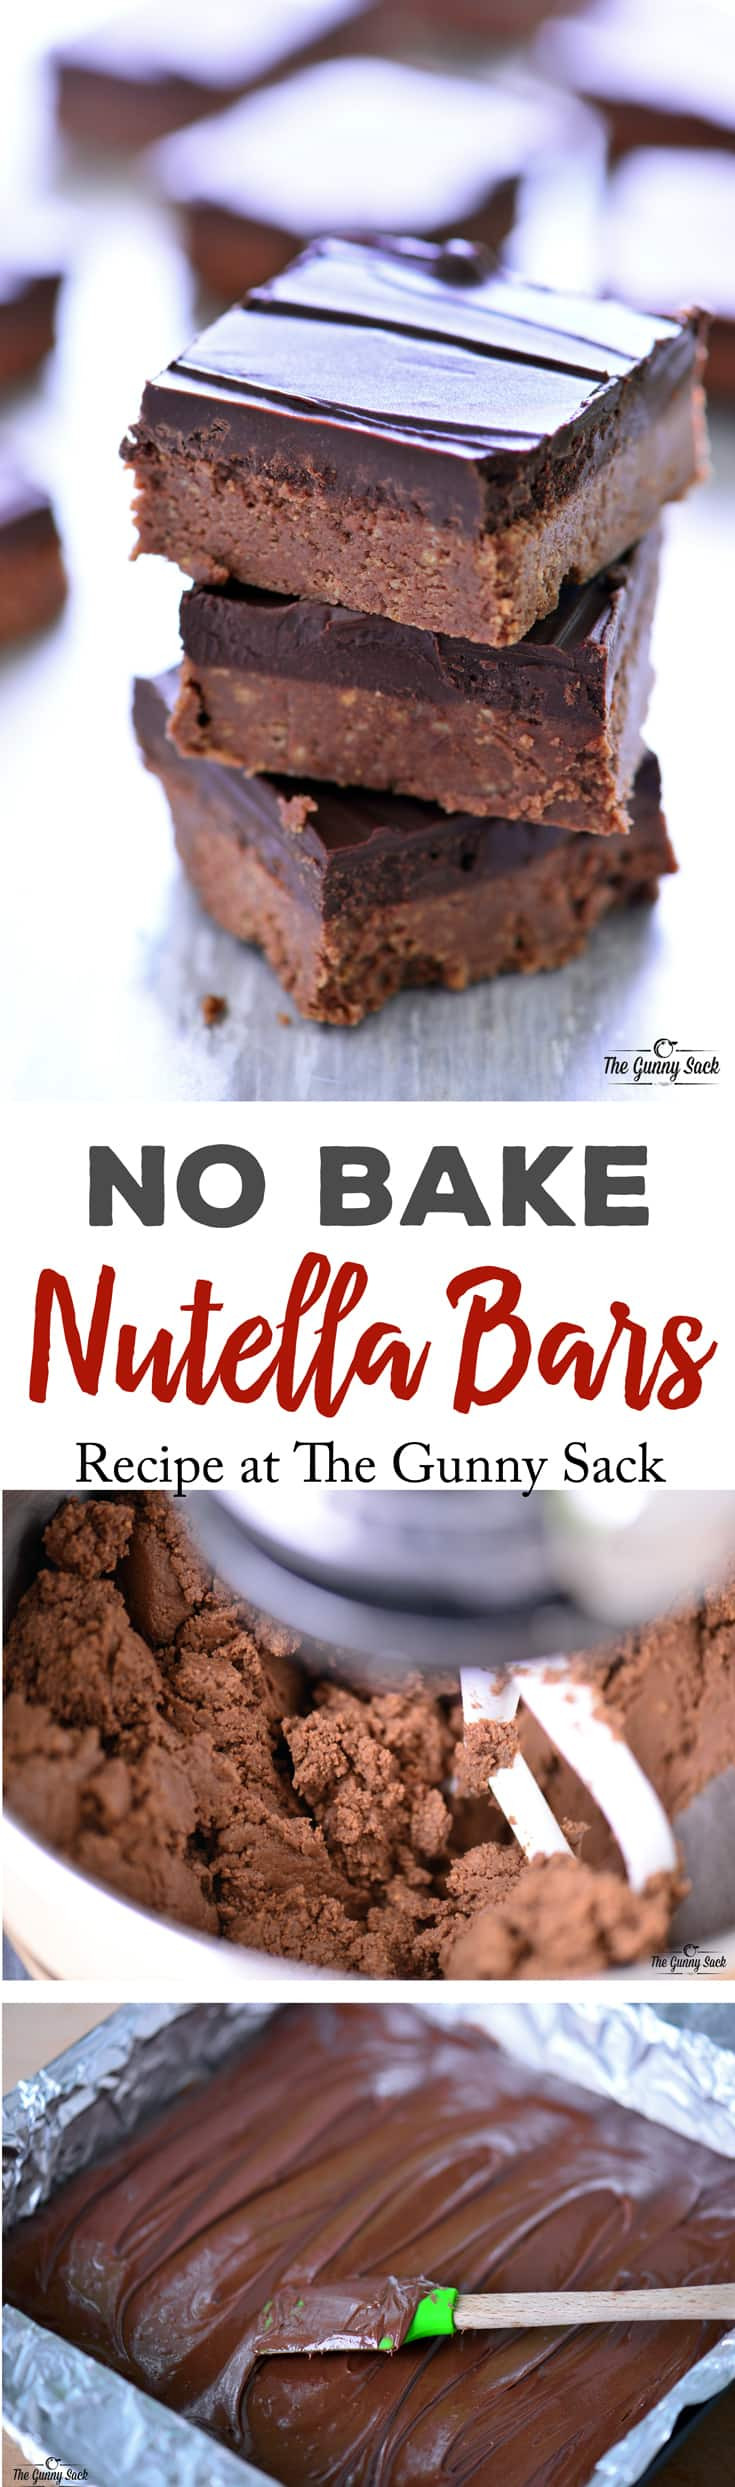 Easy Nutella Desserts  easy no bake nutella recipes